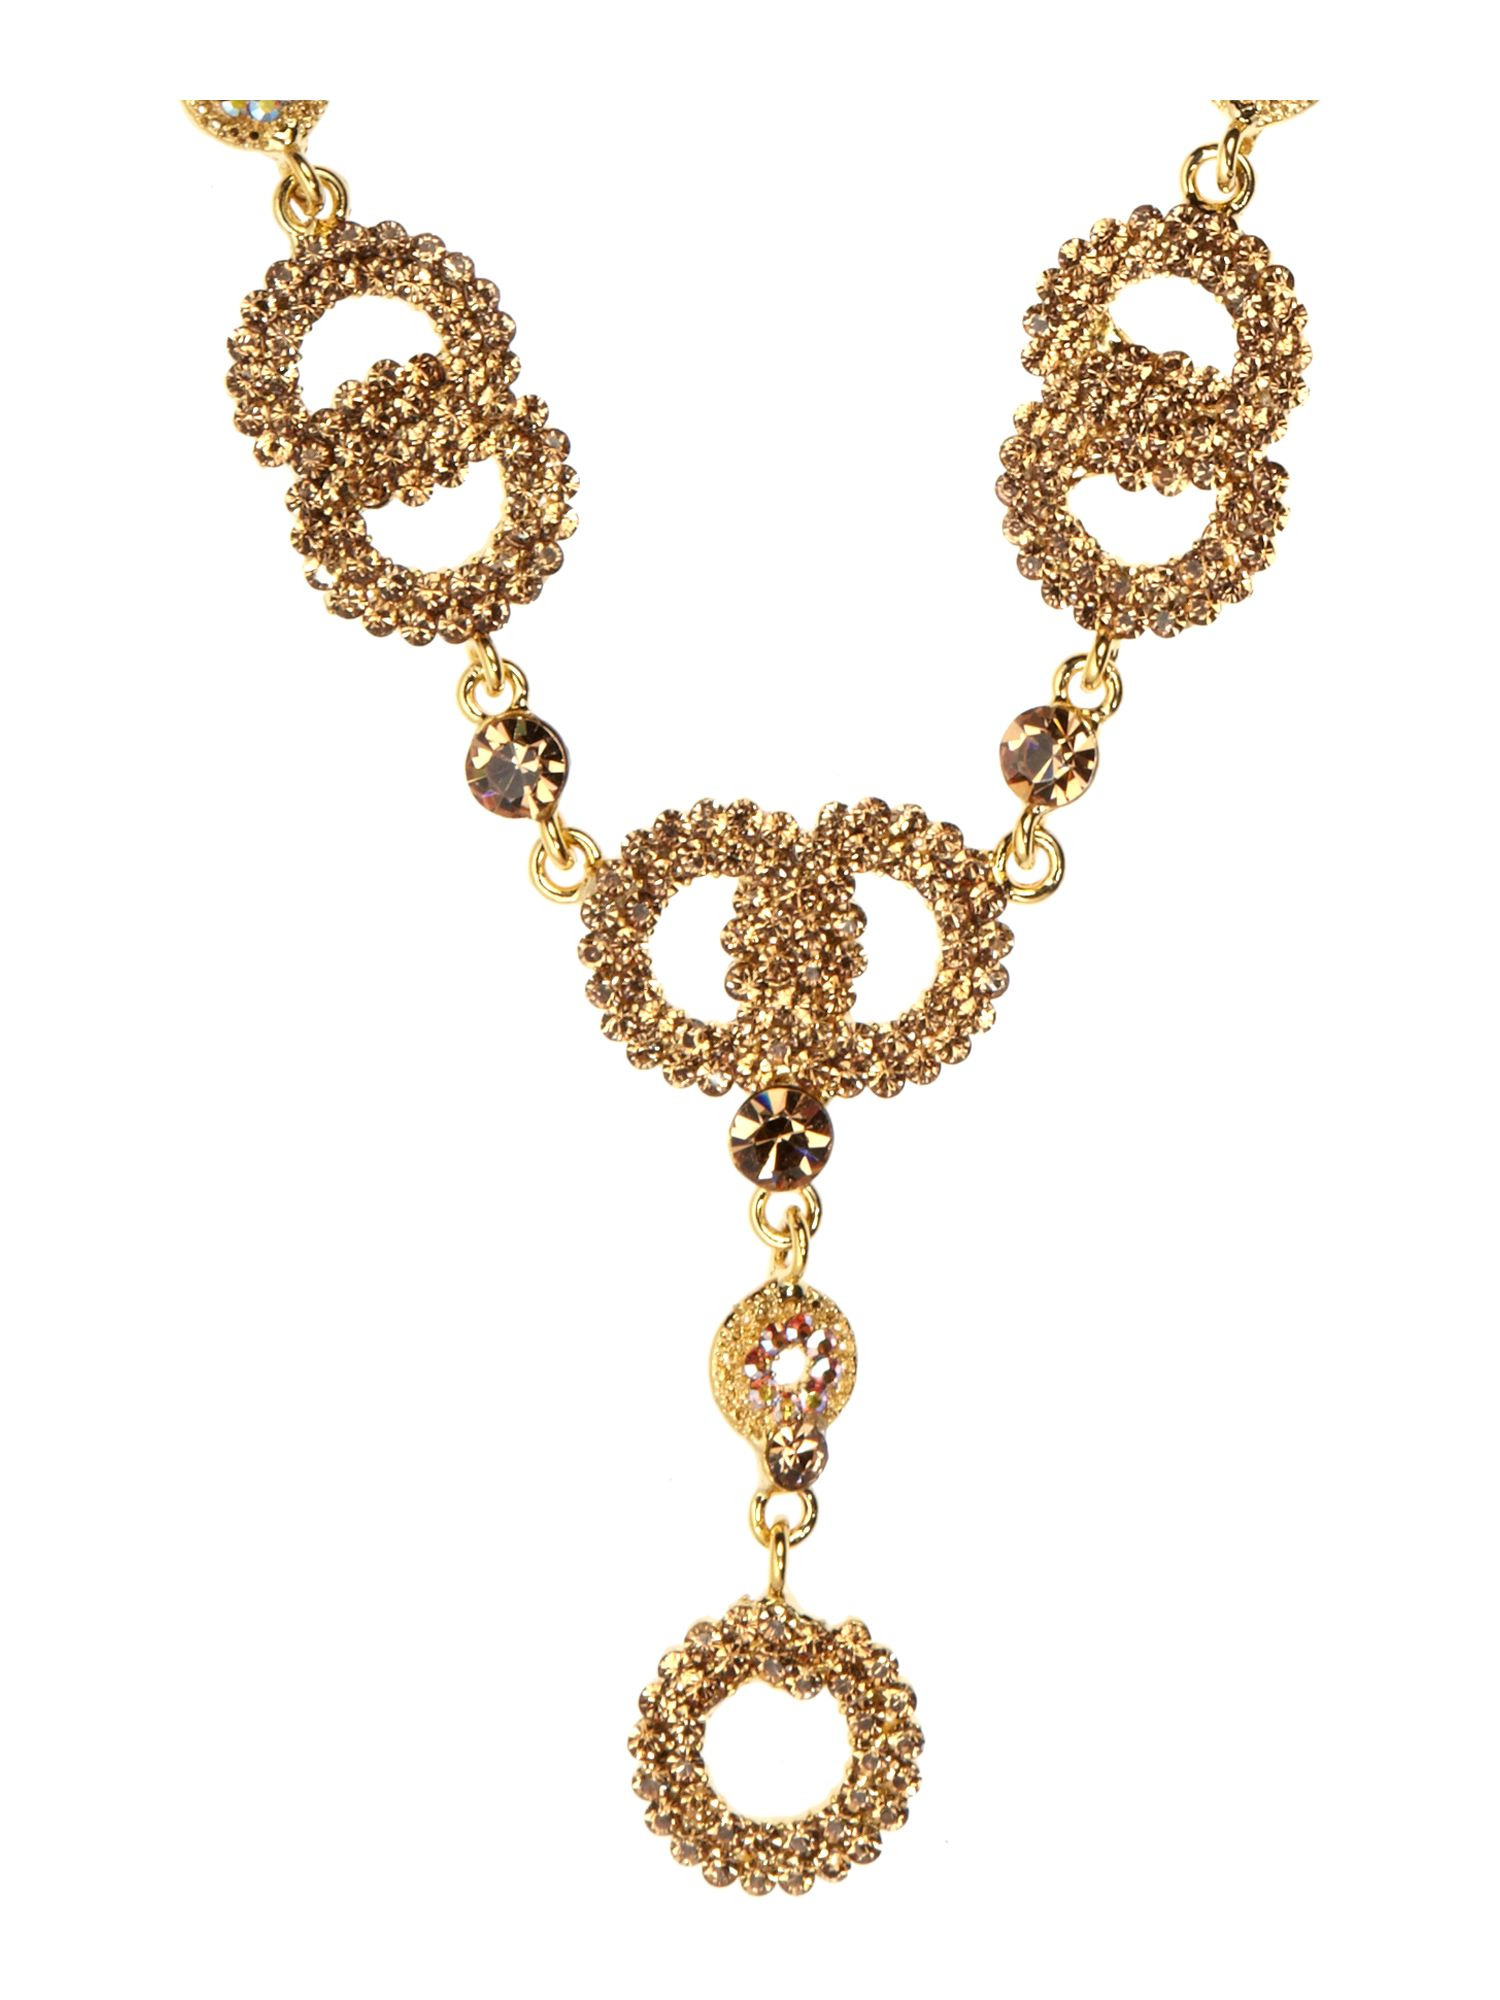 Gemini Necklace Set Made with Swarovski Crystal in Gold (Metallic)